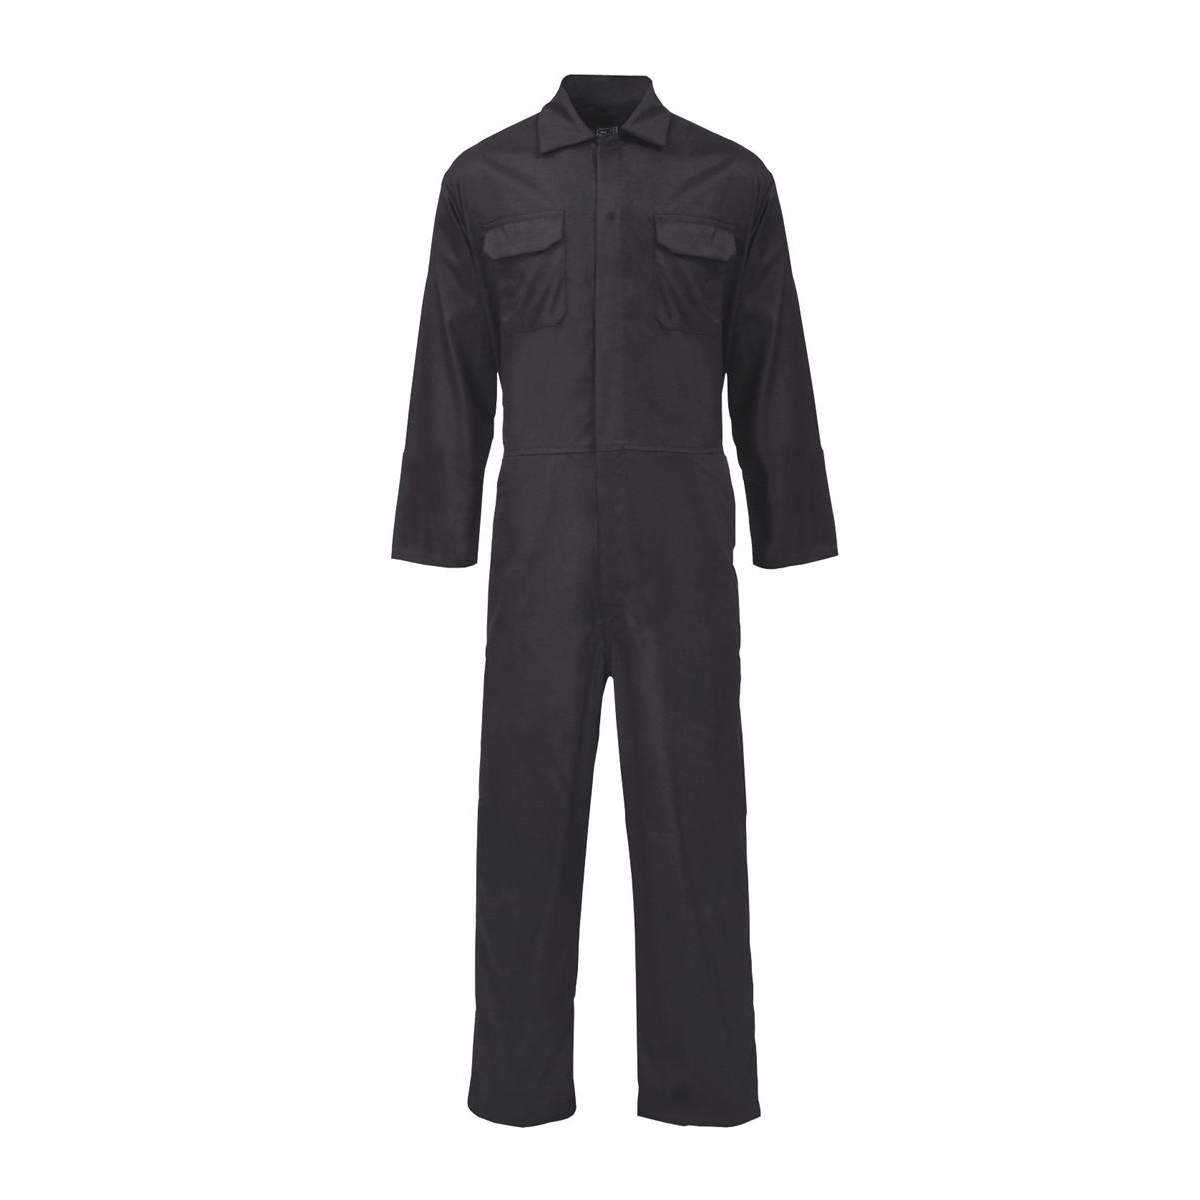 Coveralls / Overalls Coverall Basic with Popper Front Opening Polycotton XXLarge Black Ref RPCBSBL50 *Approx 3 Day Leadtime*